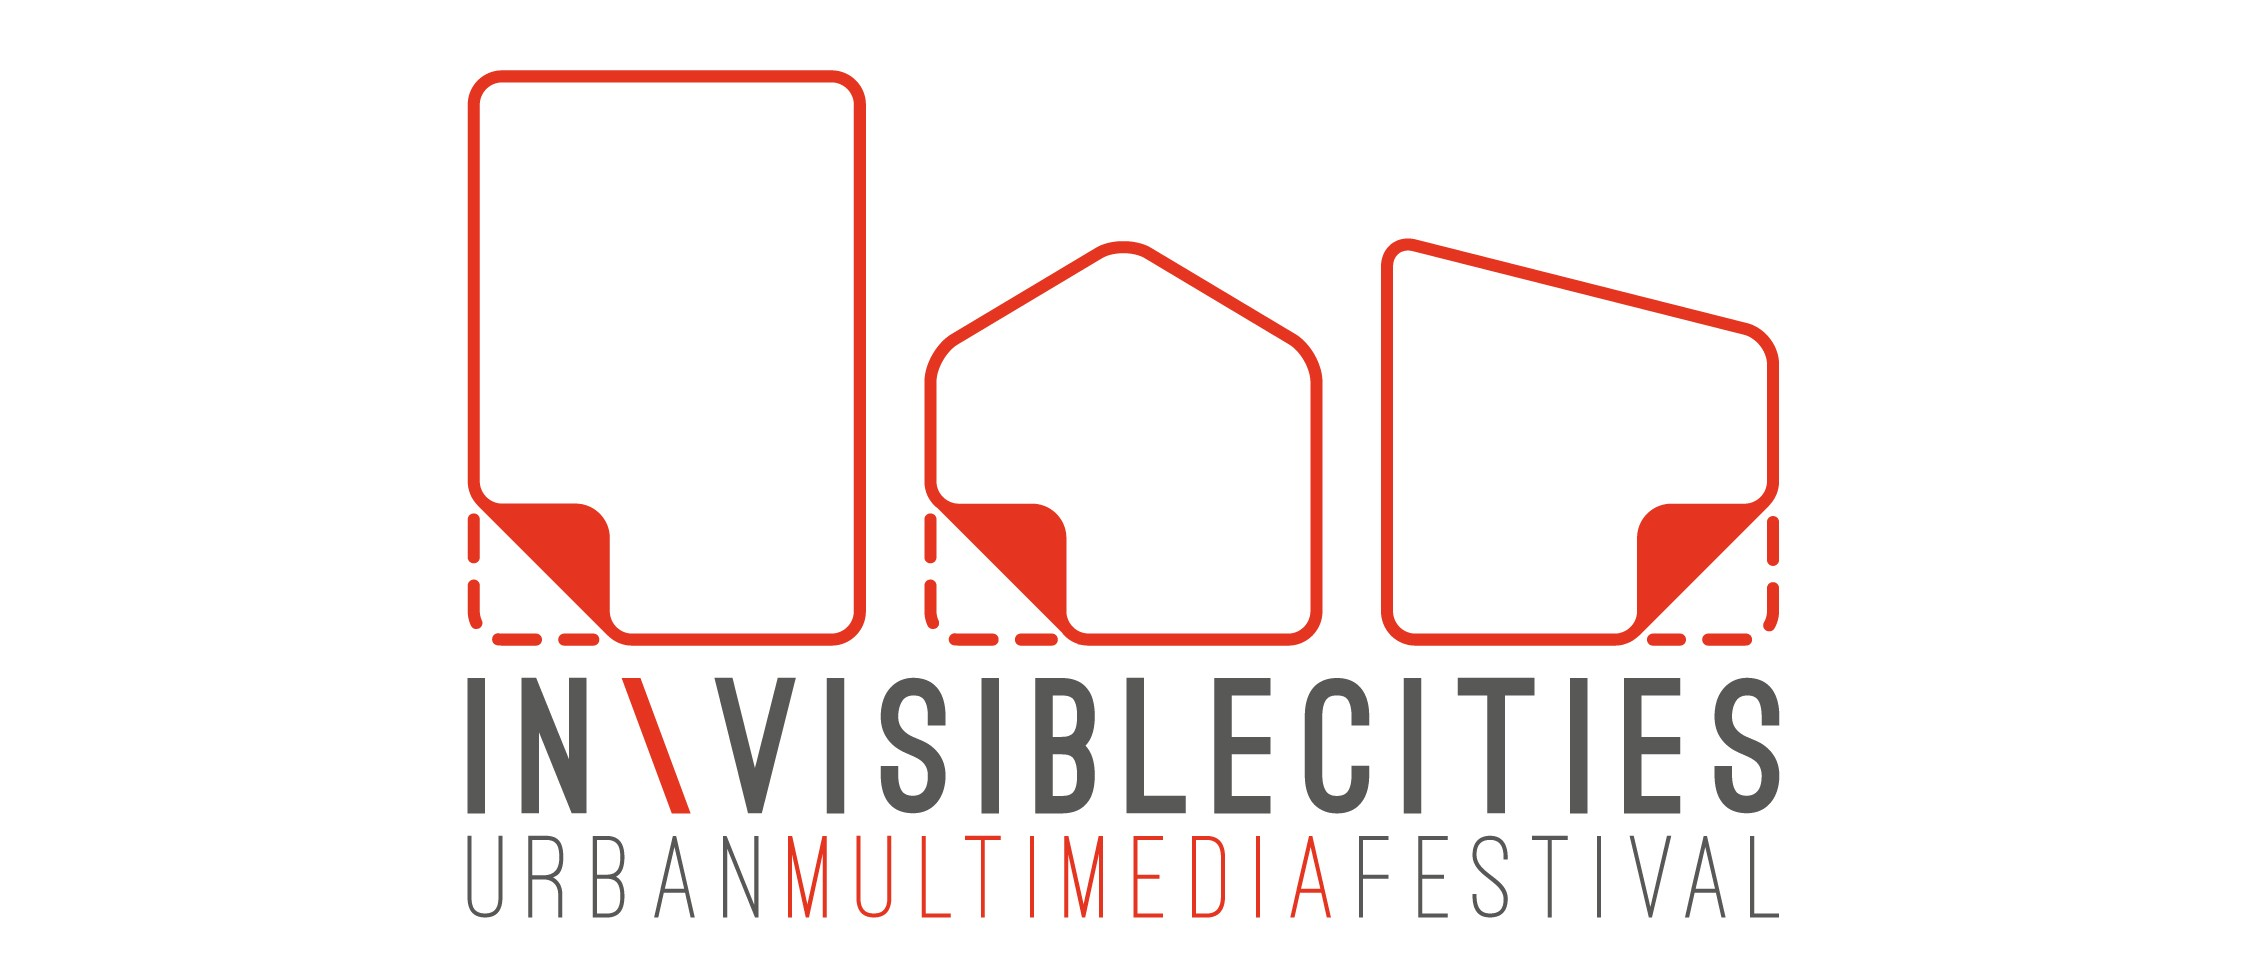 Invisible-cities-logo